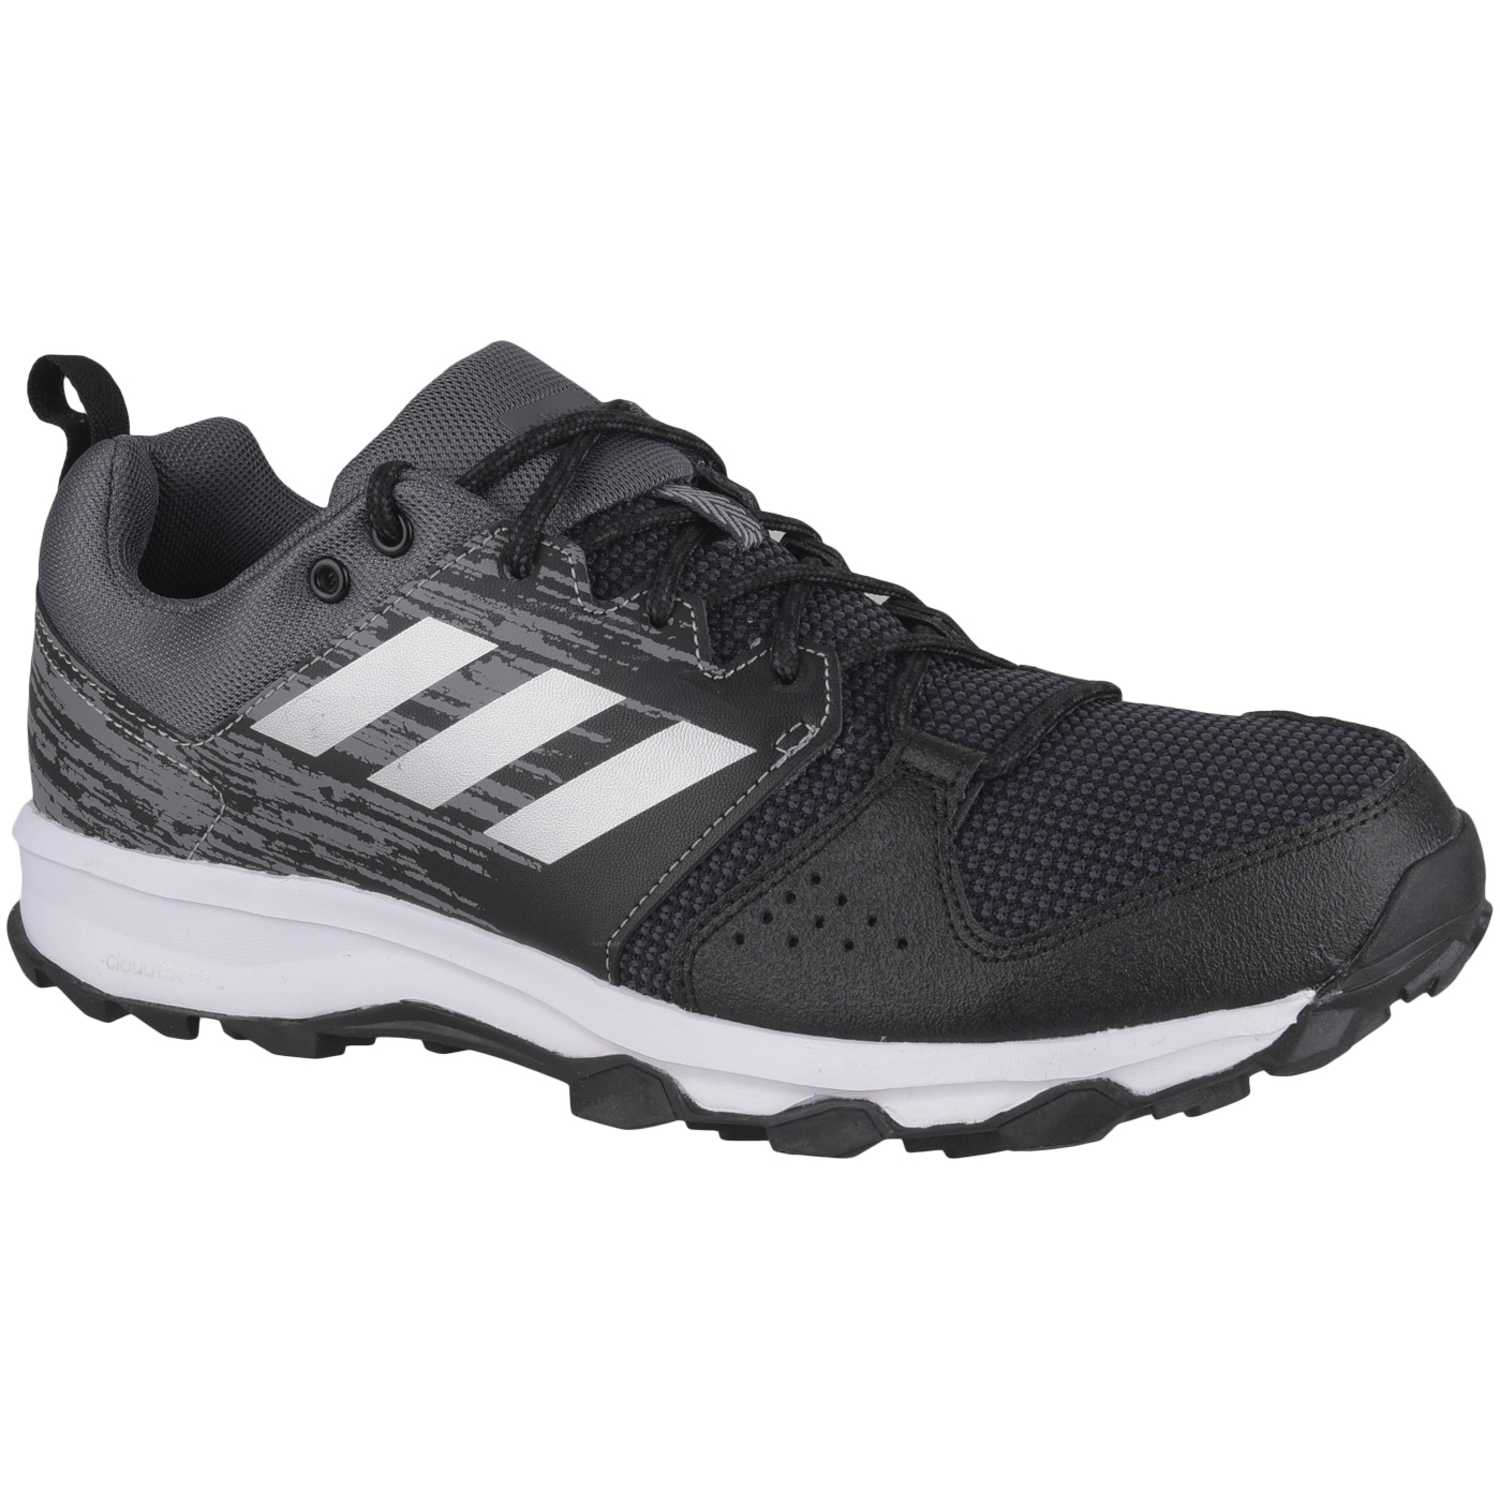 the best attitude fc906 f8c09 Zapatilla de Hombre Adidas Gris   plomo galaxy trail